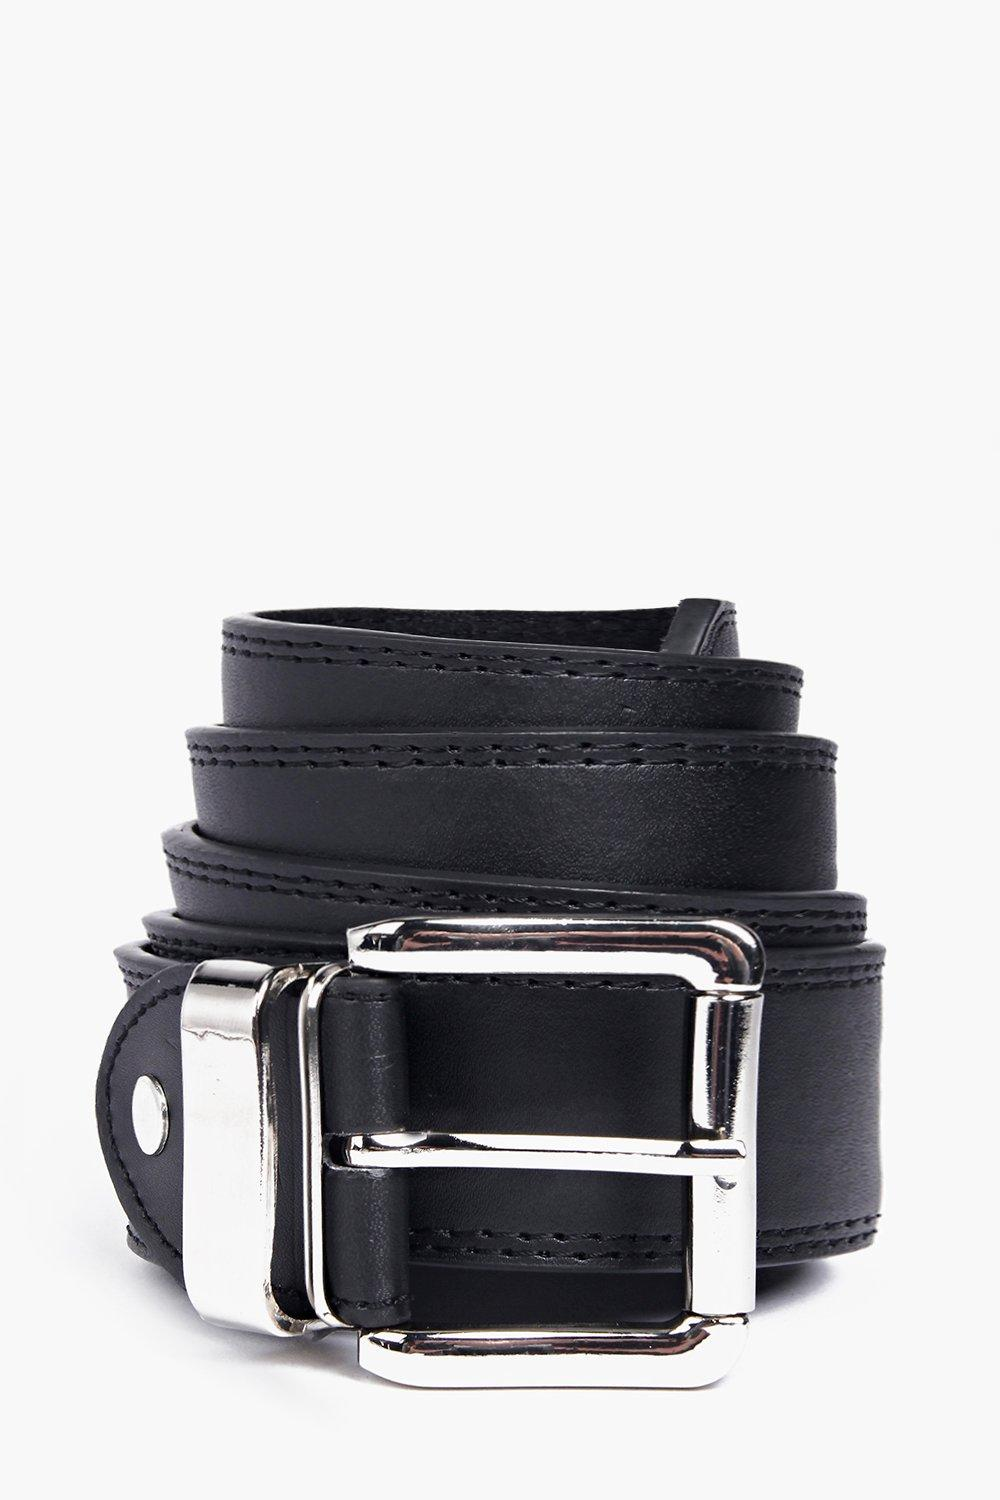 Stitched Leather Lined Belt - black - Bring your a